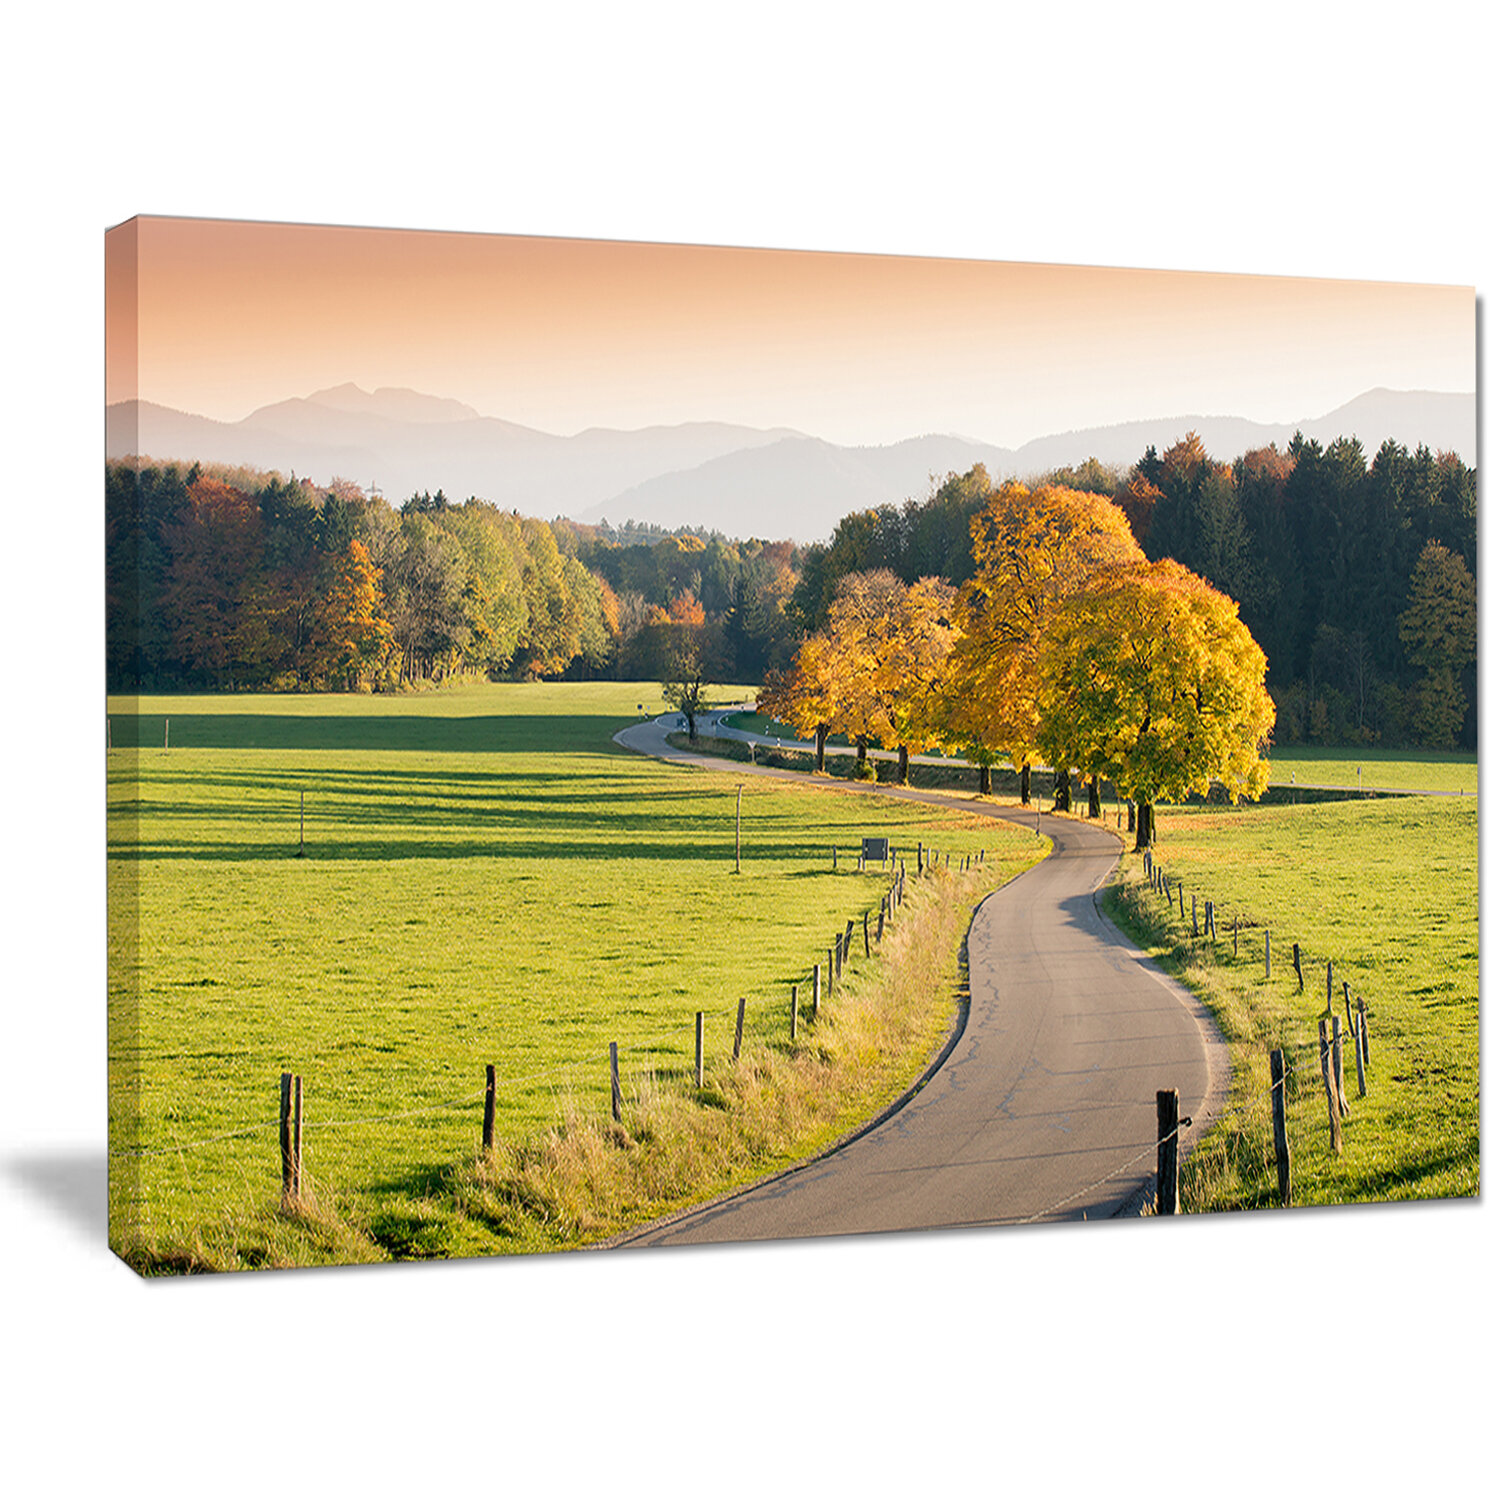 DesignArt \'Winding Country Road in the Fall\' Photographic Print on ...